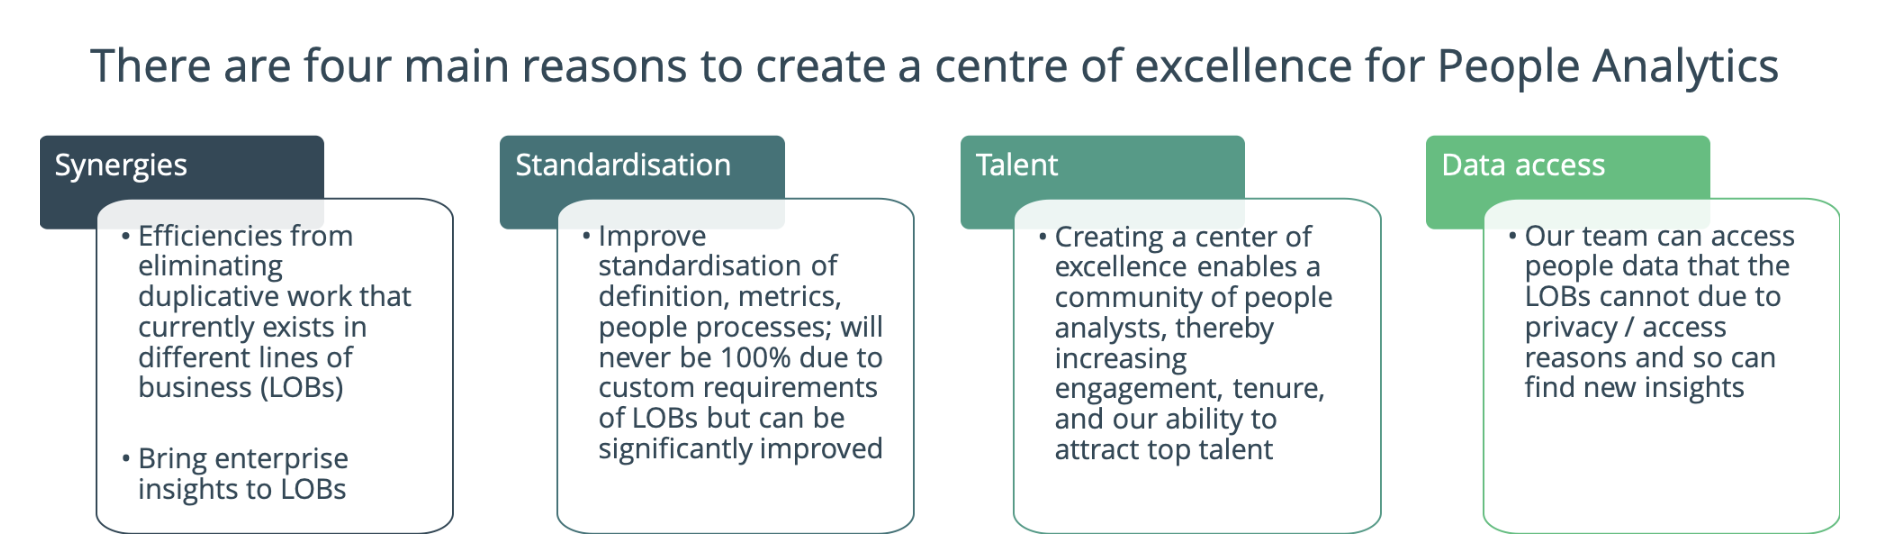 FIG 6:    Reasons to create a Centre of Excellence for People Analytics (Source: Guru Sethupathy)